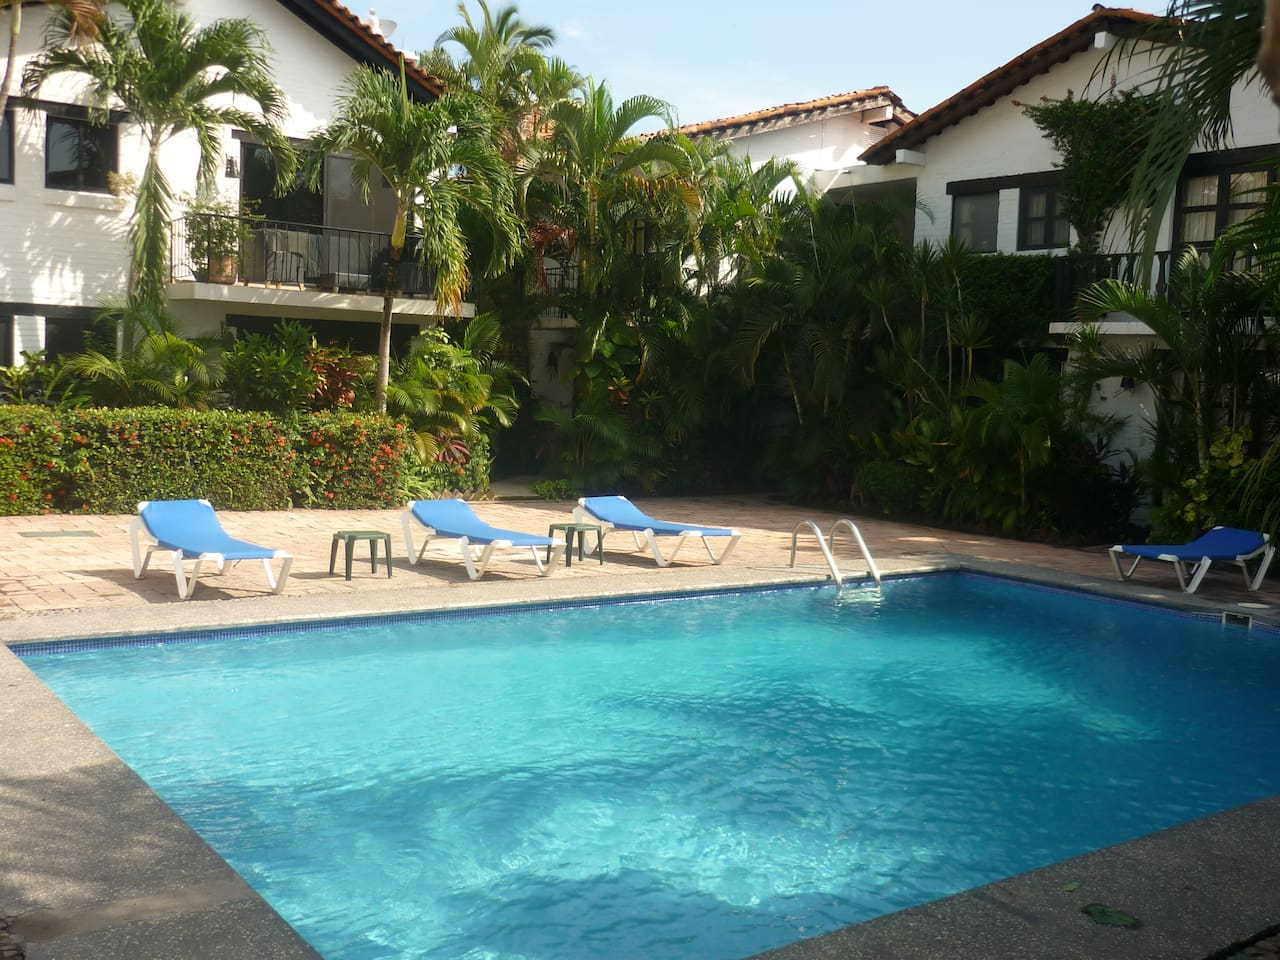 Well maintained tropical gardens and pool of Suites Flamingo